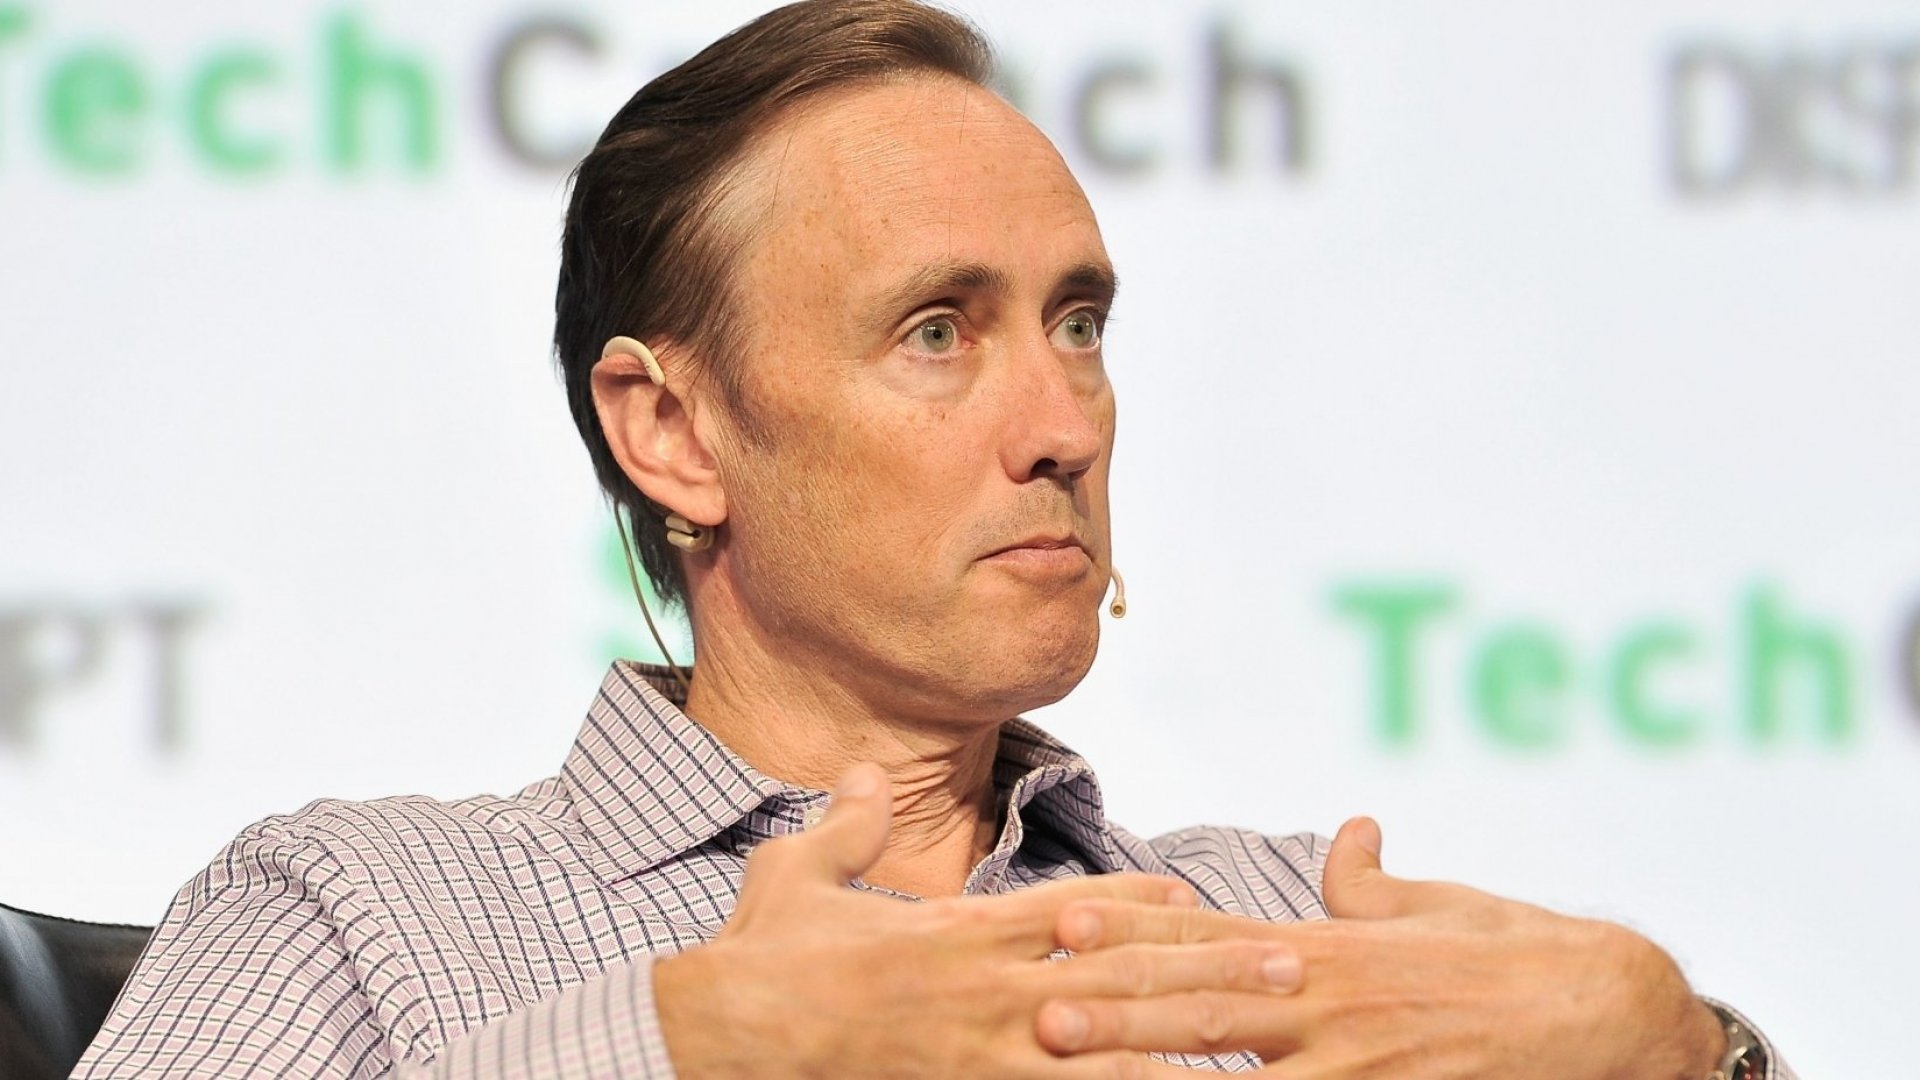 Steve Jurvetson Quits His VC Firm and Takes Leave of Absence From Tesla and SpaceX Boards After Sexual Harassment Allegations